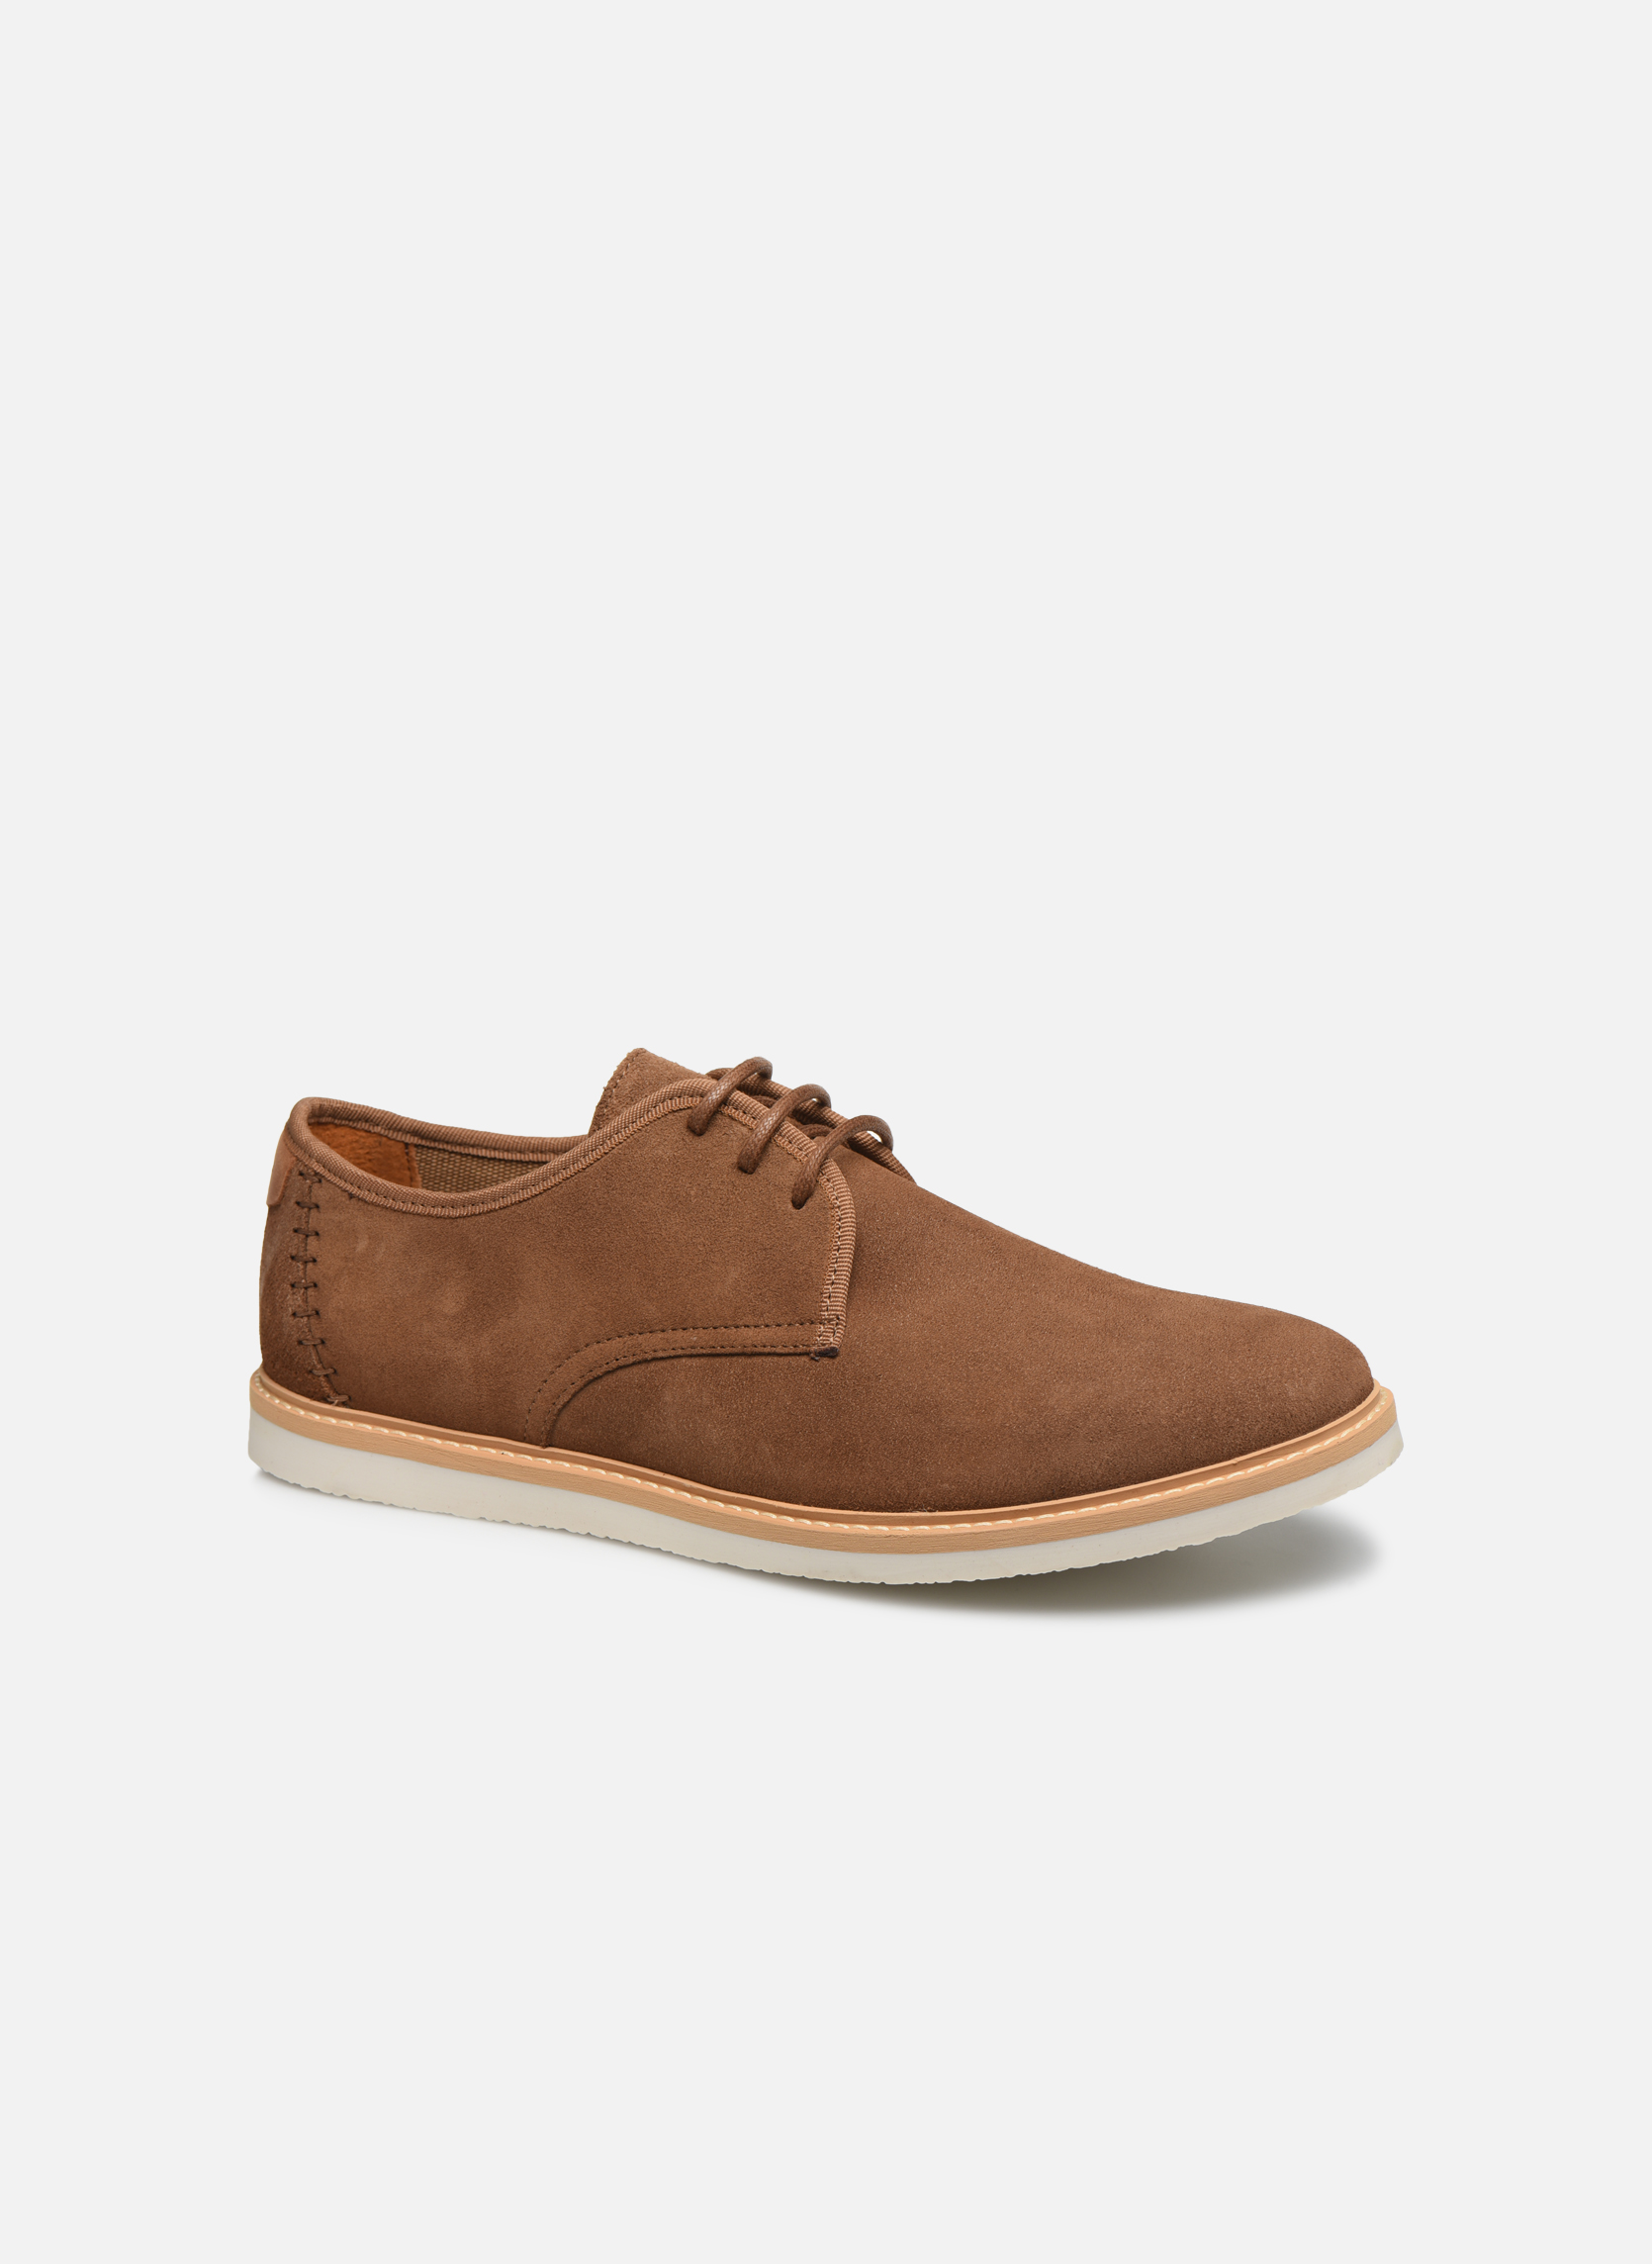 Chaussures à lacets Homme Fly Derby Suede